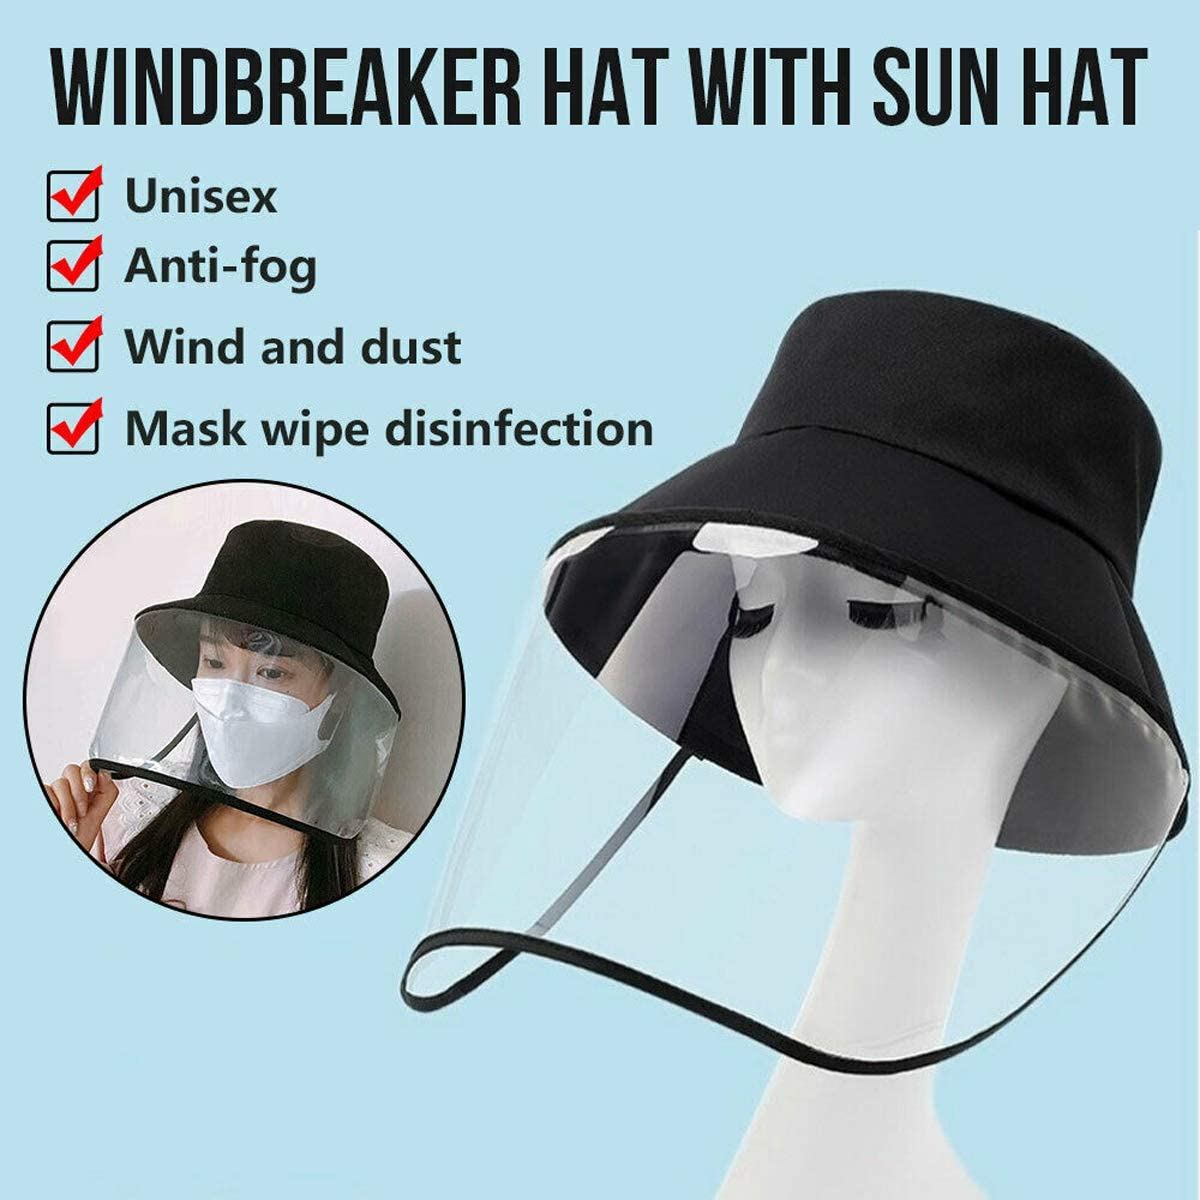 Reusable Face Visor for Protection Universal Anti-Fog Dust-Proof Sun Hat for Women fancheng Safety Face Shield Anti-Spitting Anti-Splash Full Face Protective Empty Top Hat Men.